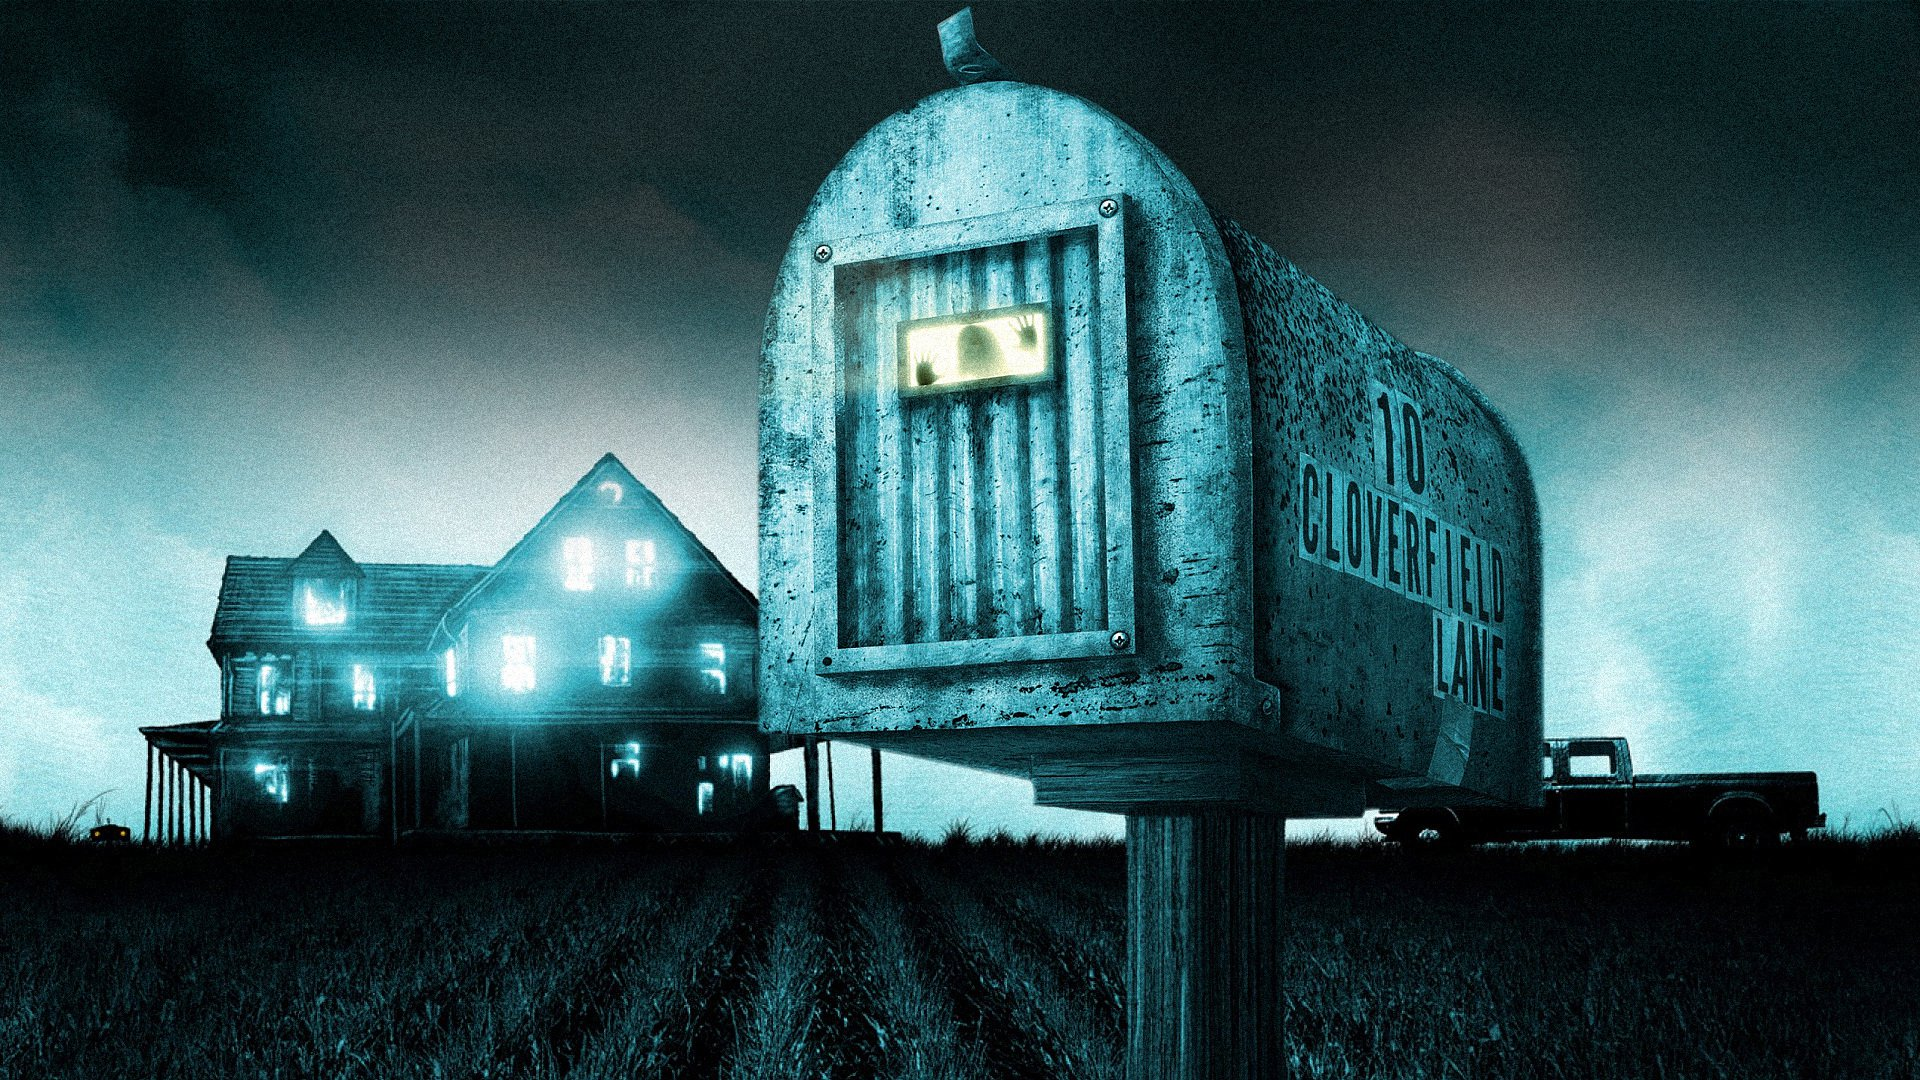 10 Cloverfield Lane desktop wallpaper